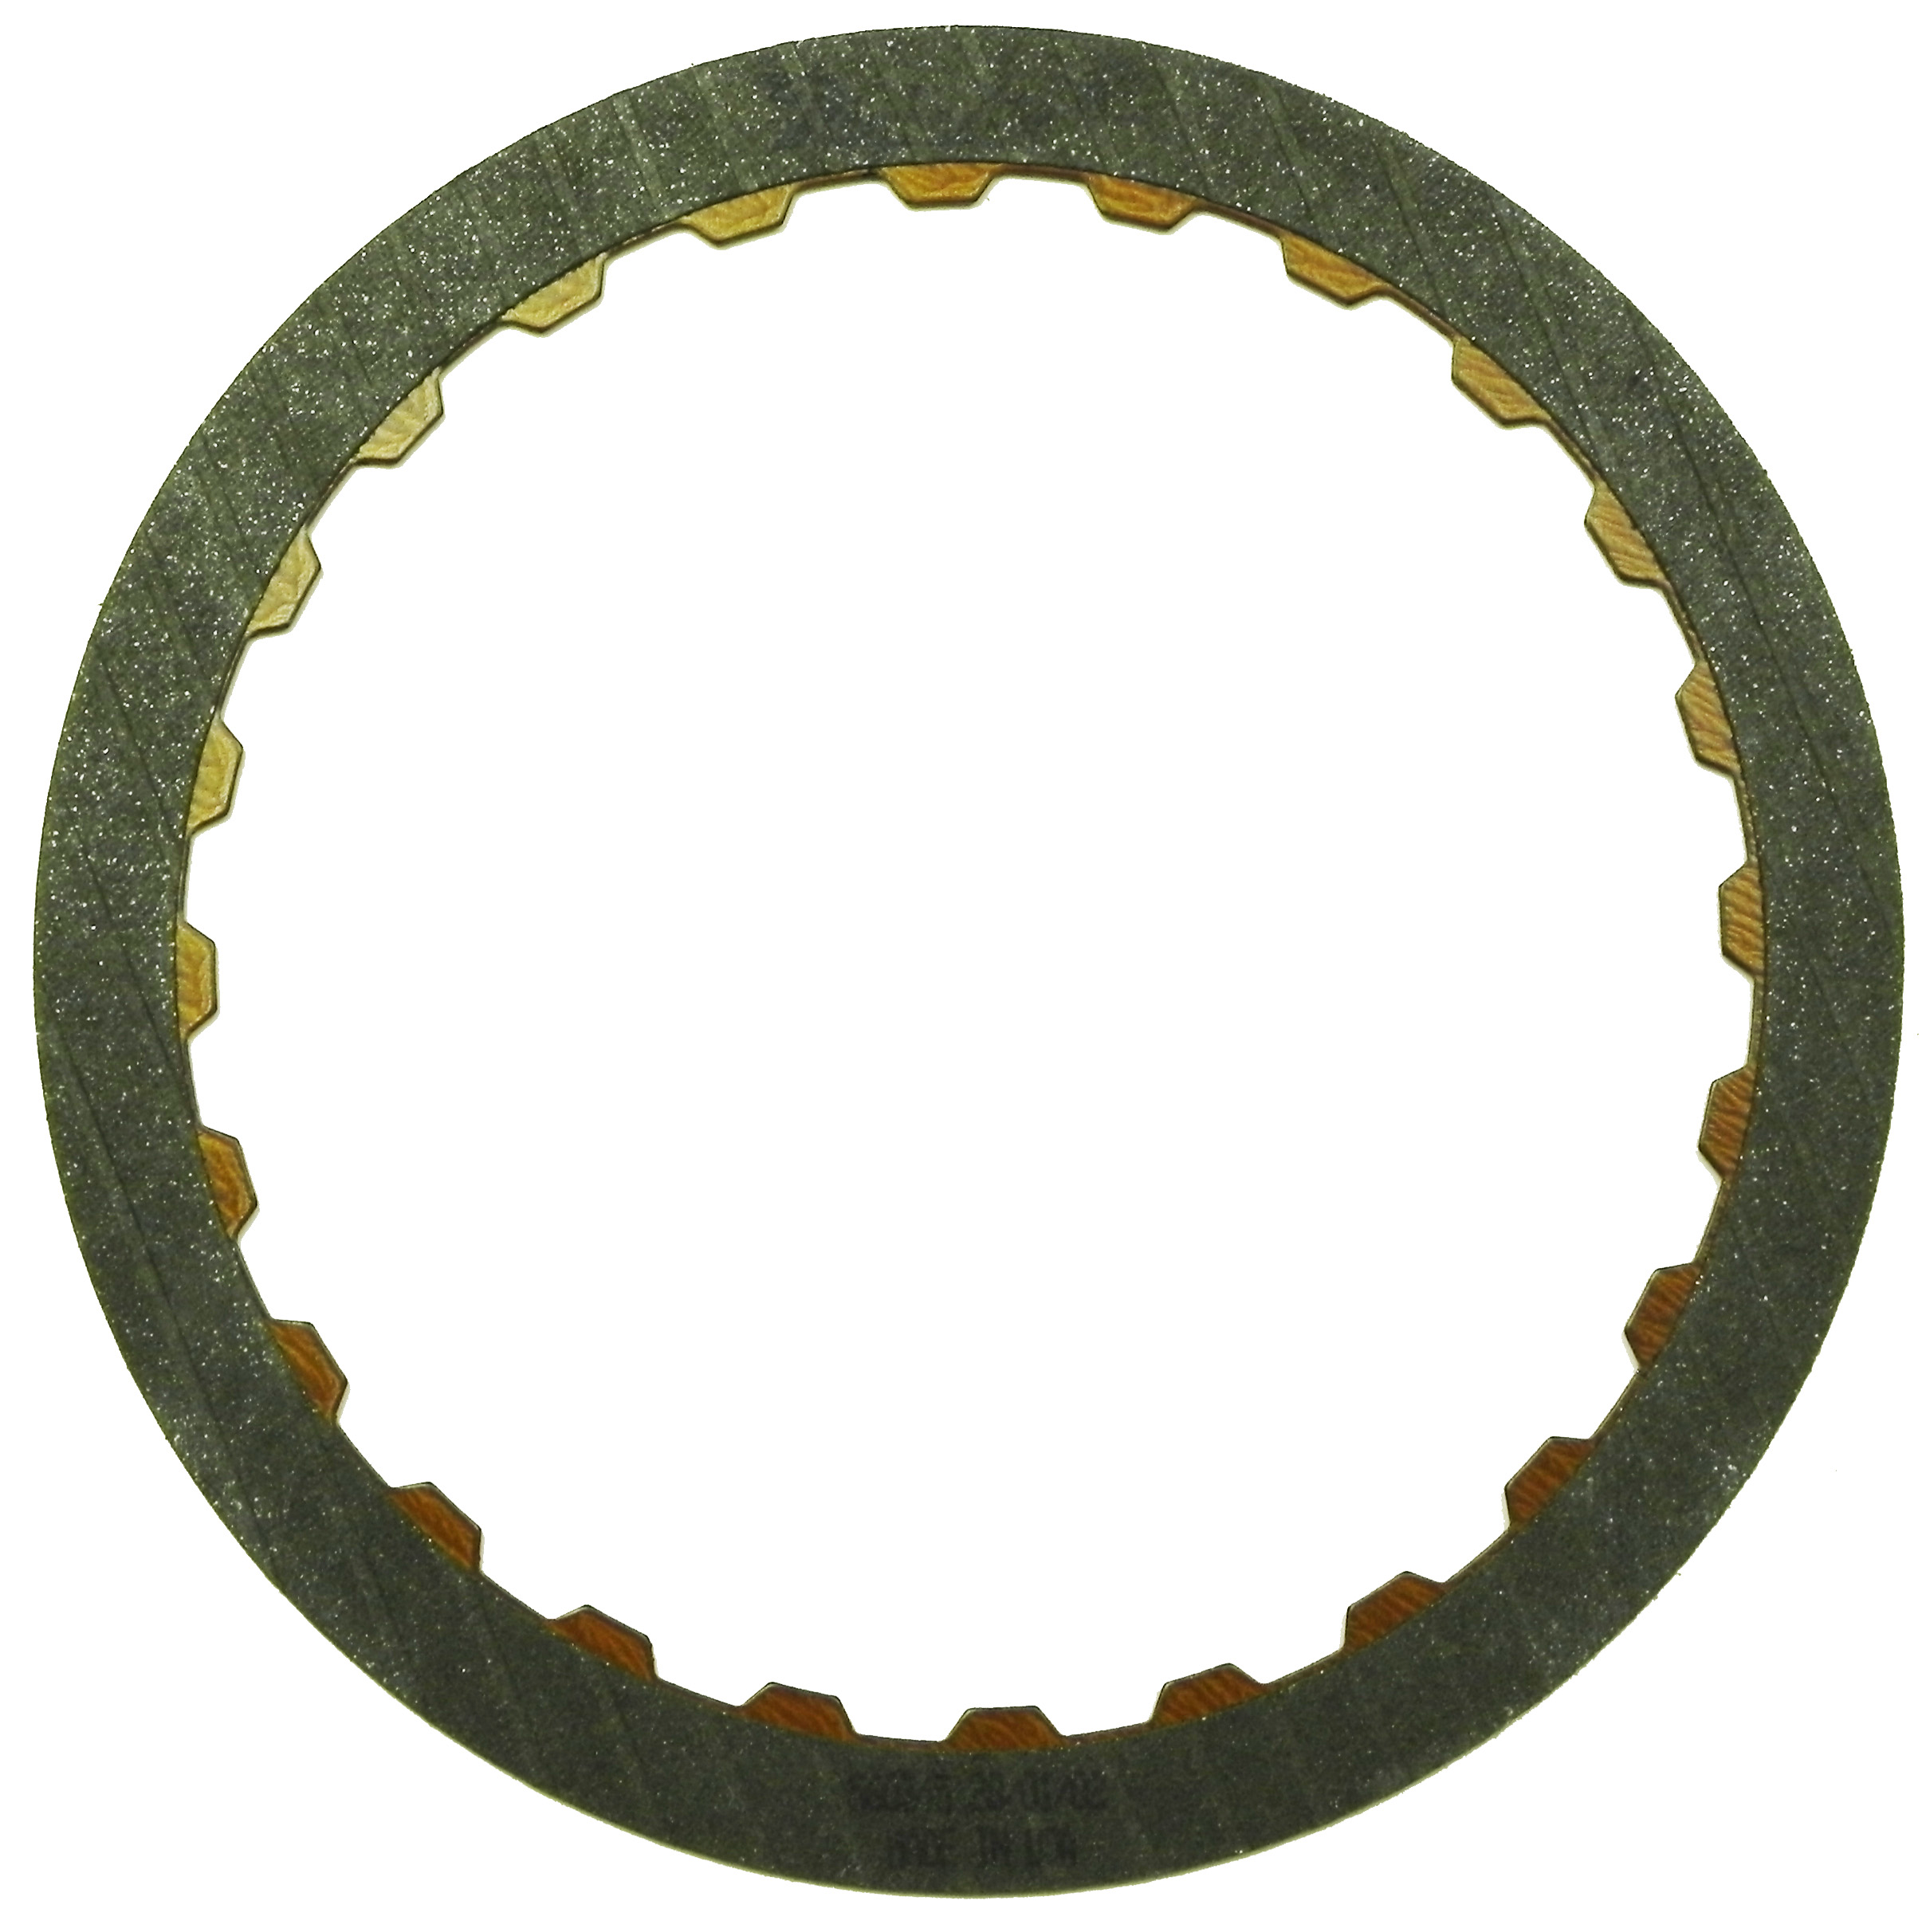 095, 096, 097, 098, AG4, 01M, 01N, 01P, AR4, AD4, AD8 High Energy Friction Clutch Plate